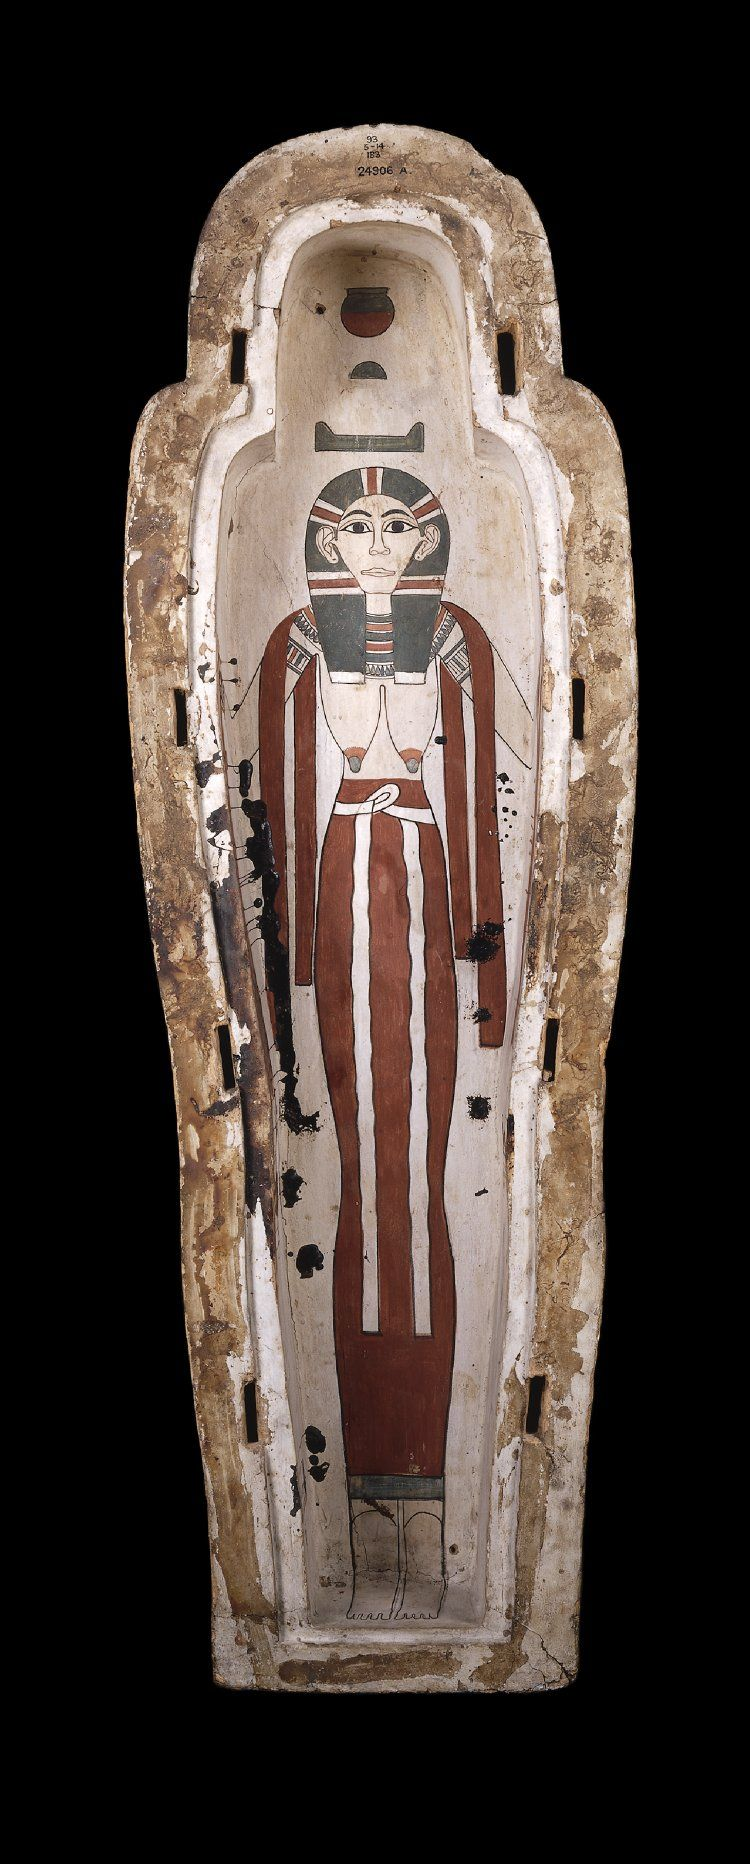 Interior of base of the polychrome wooden coffin of Pensenhor, a Libyan who settled in Egypt. 22nd dynasty, c. 945-715 B.C. | The British Museum